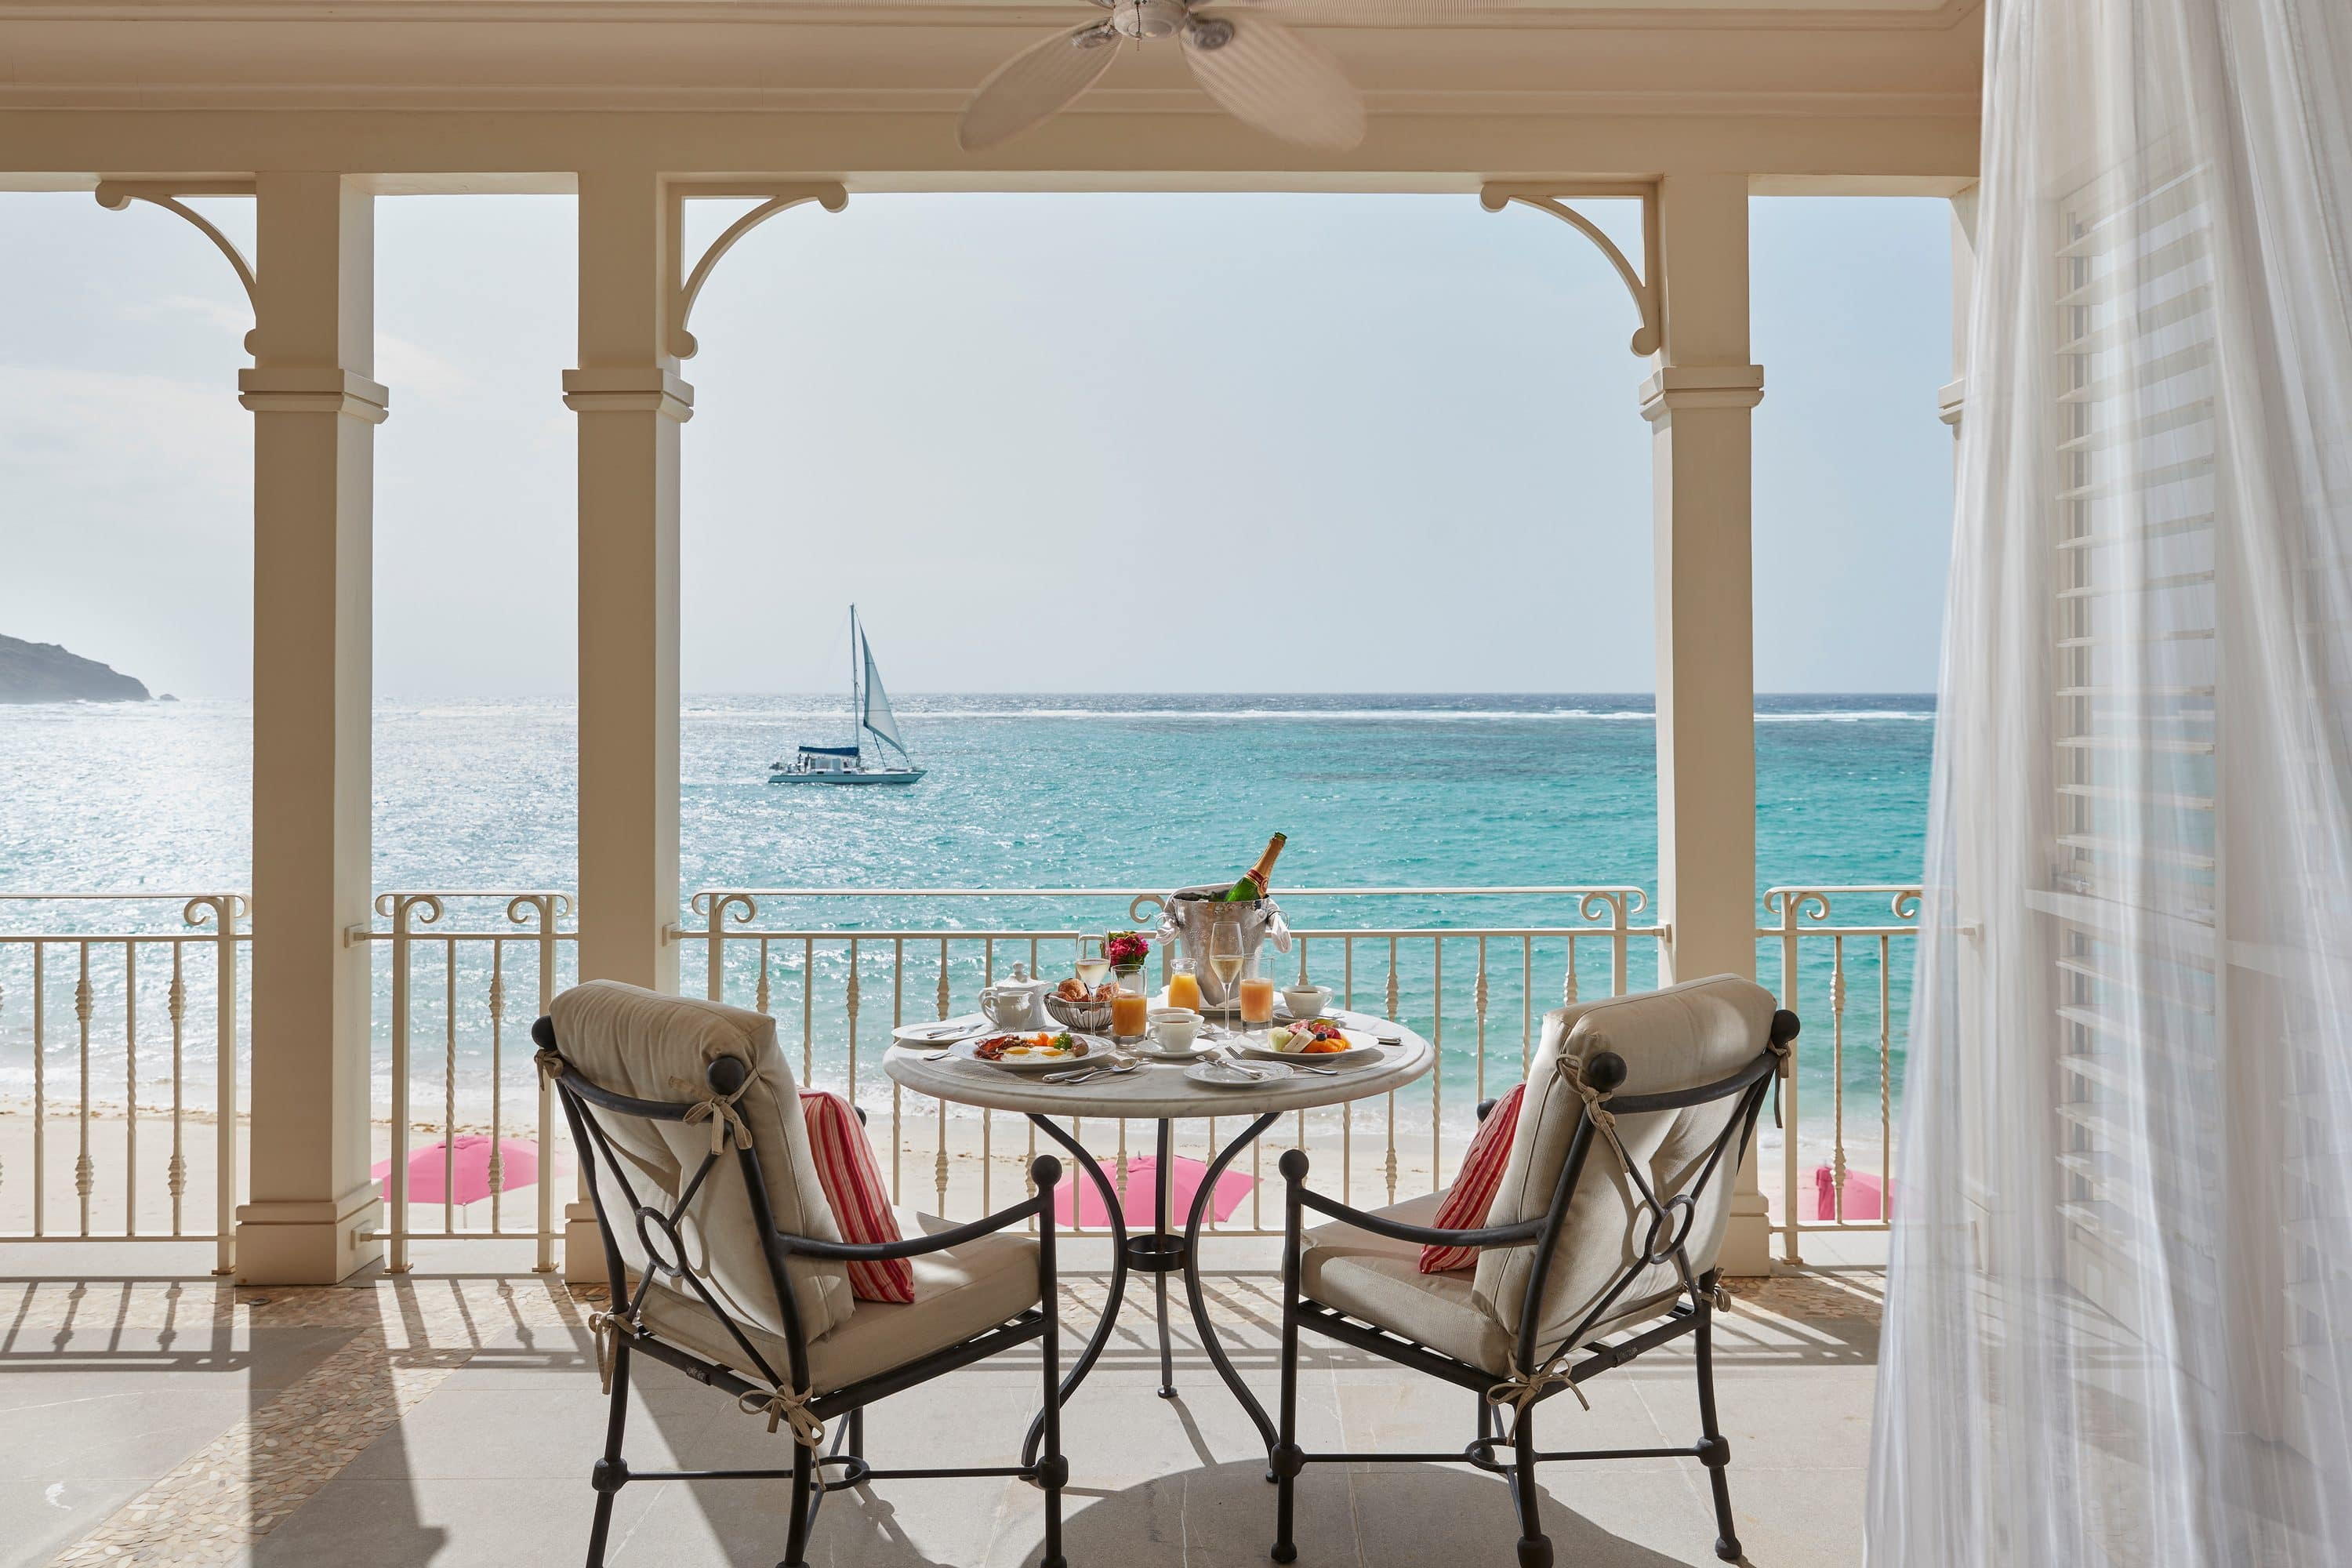 Breakfast for two with a sea view on a private terrace at Mandarin Oriental, Canouan